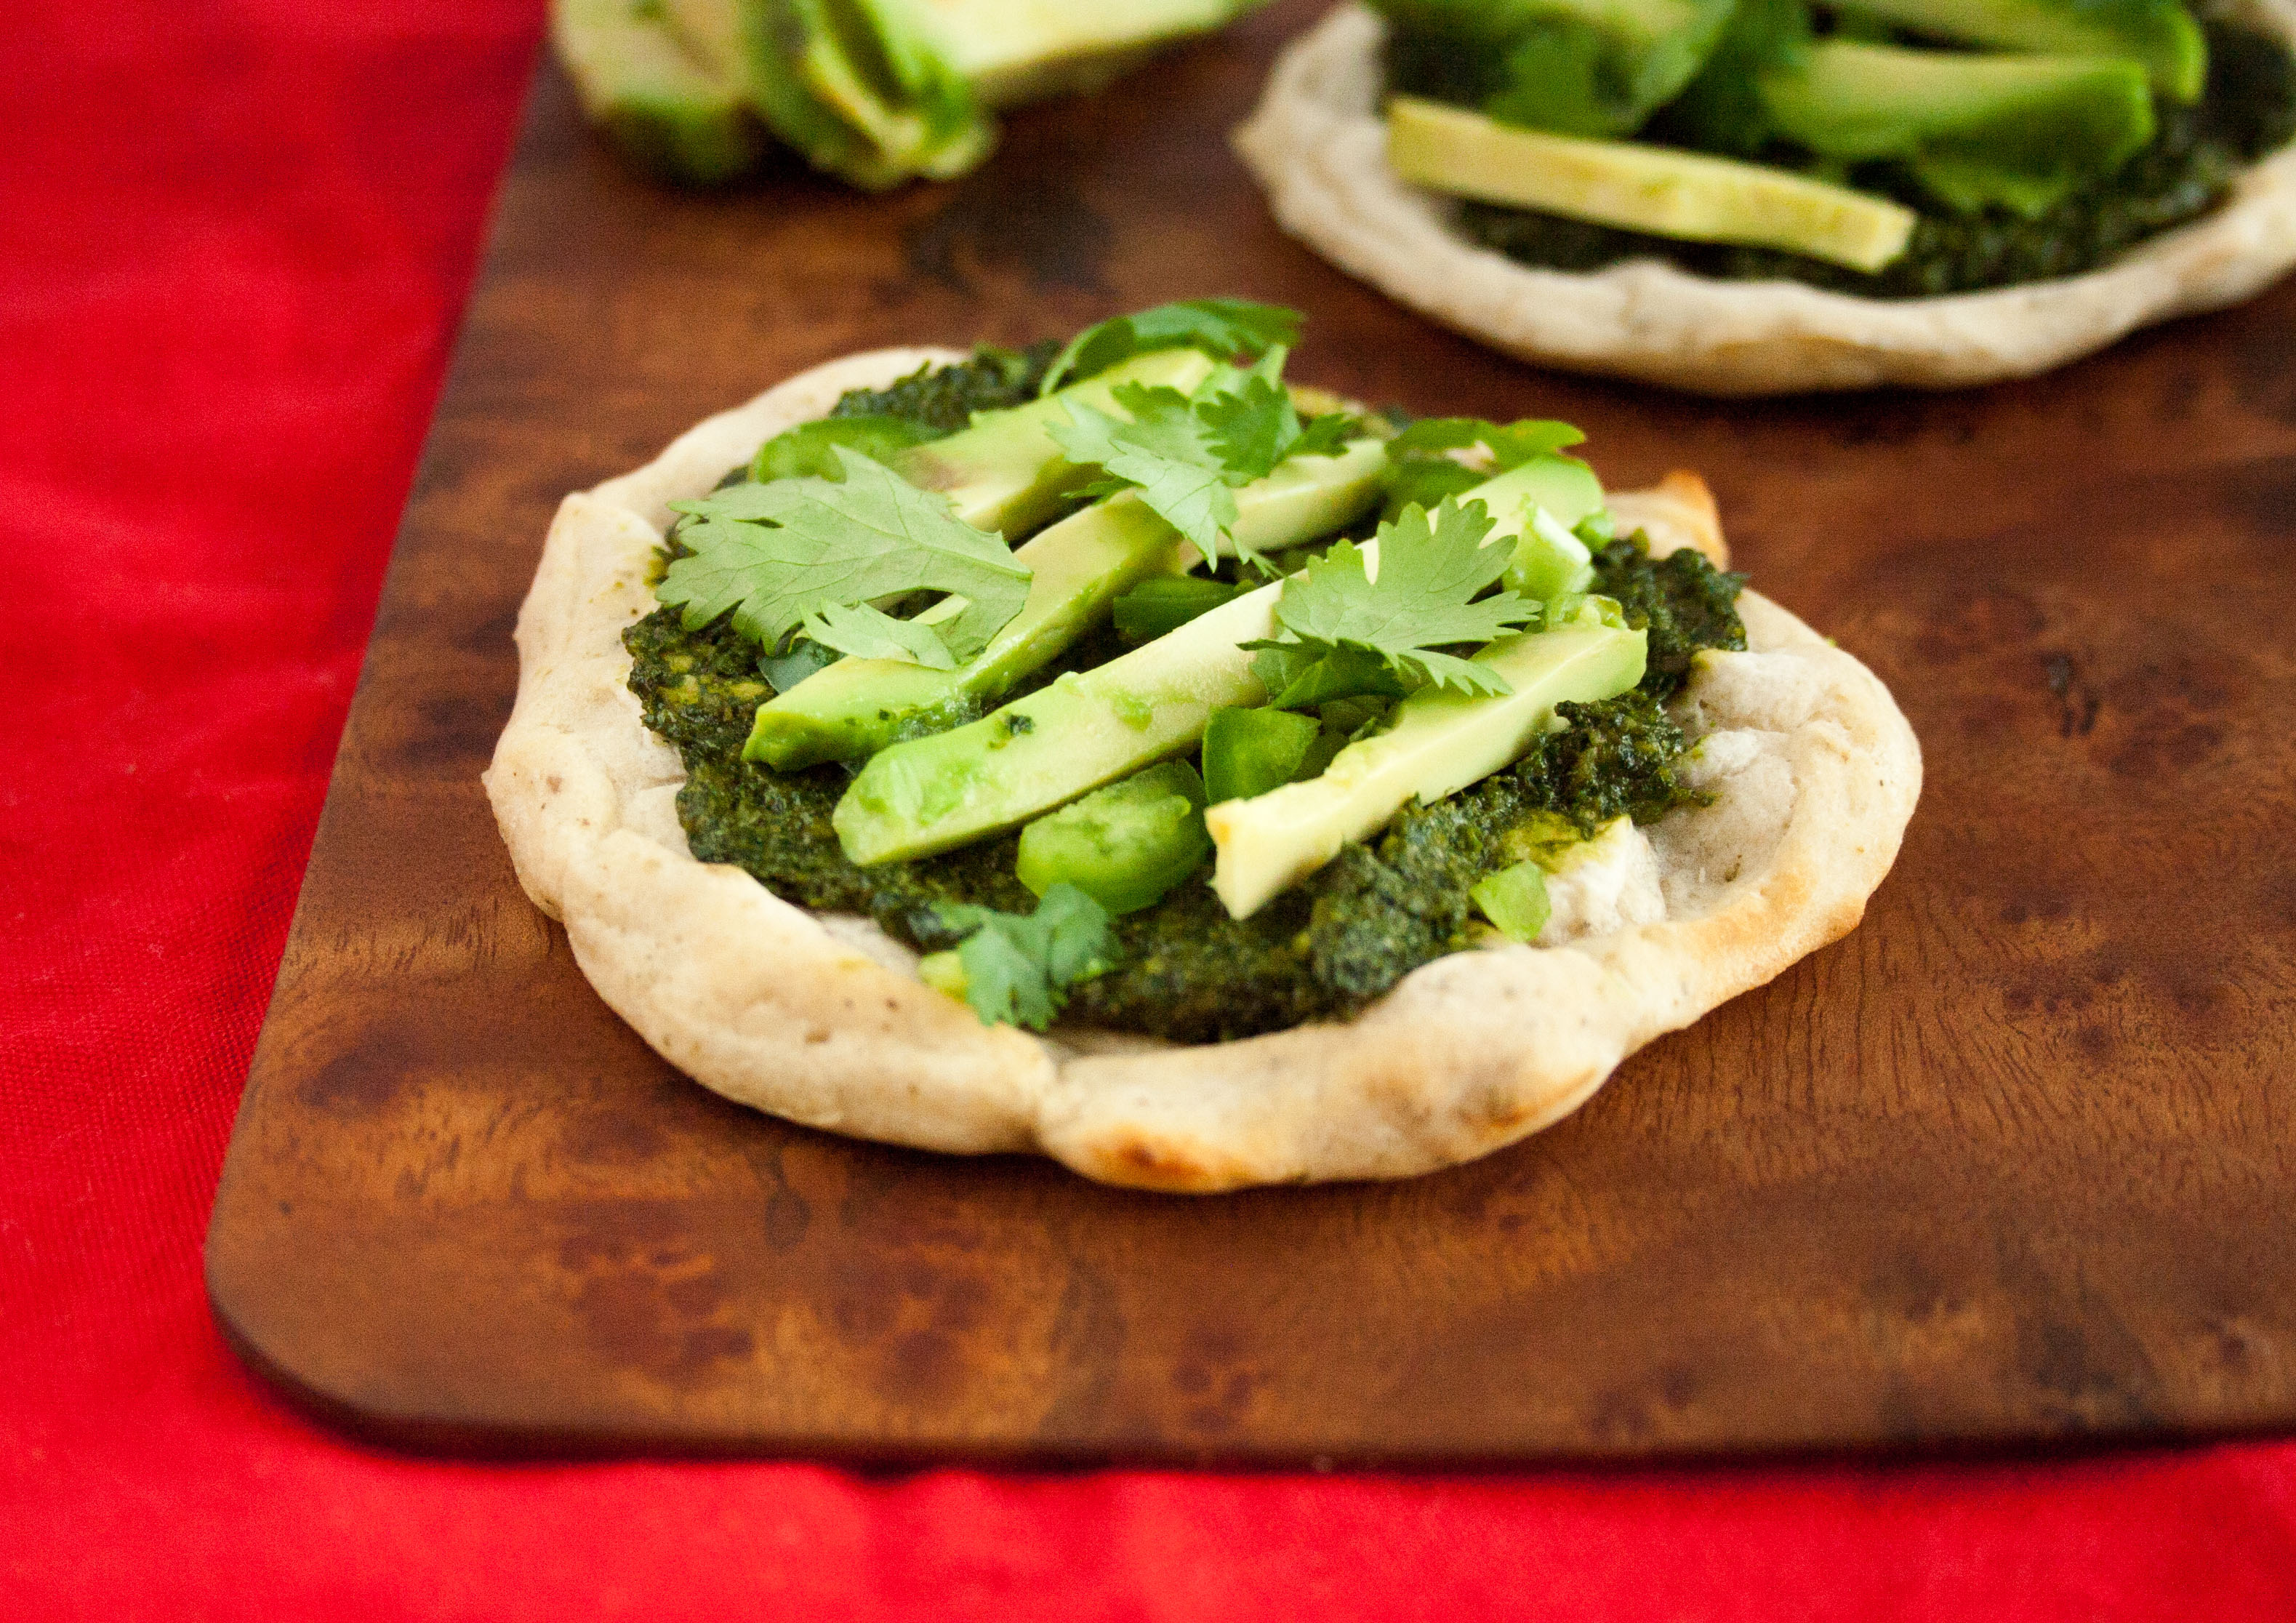 Mini Pizzas with Cilantro Pesto and Avocado close up.